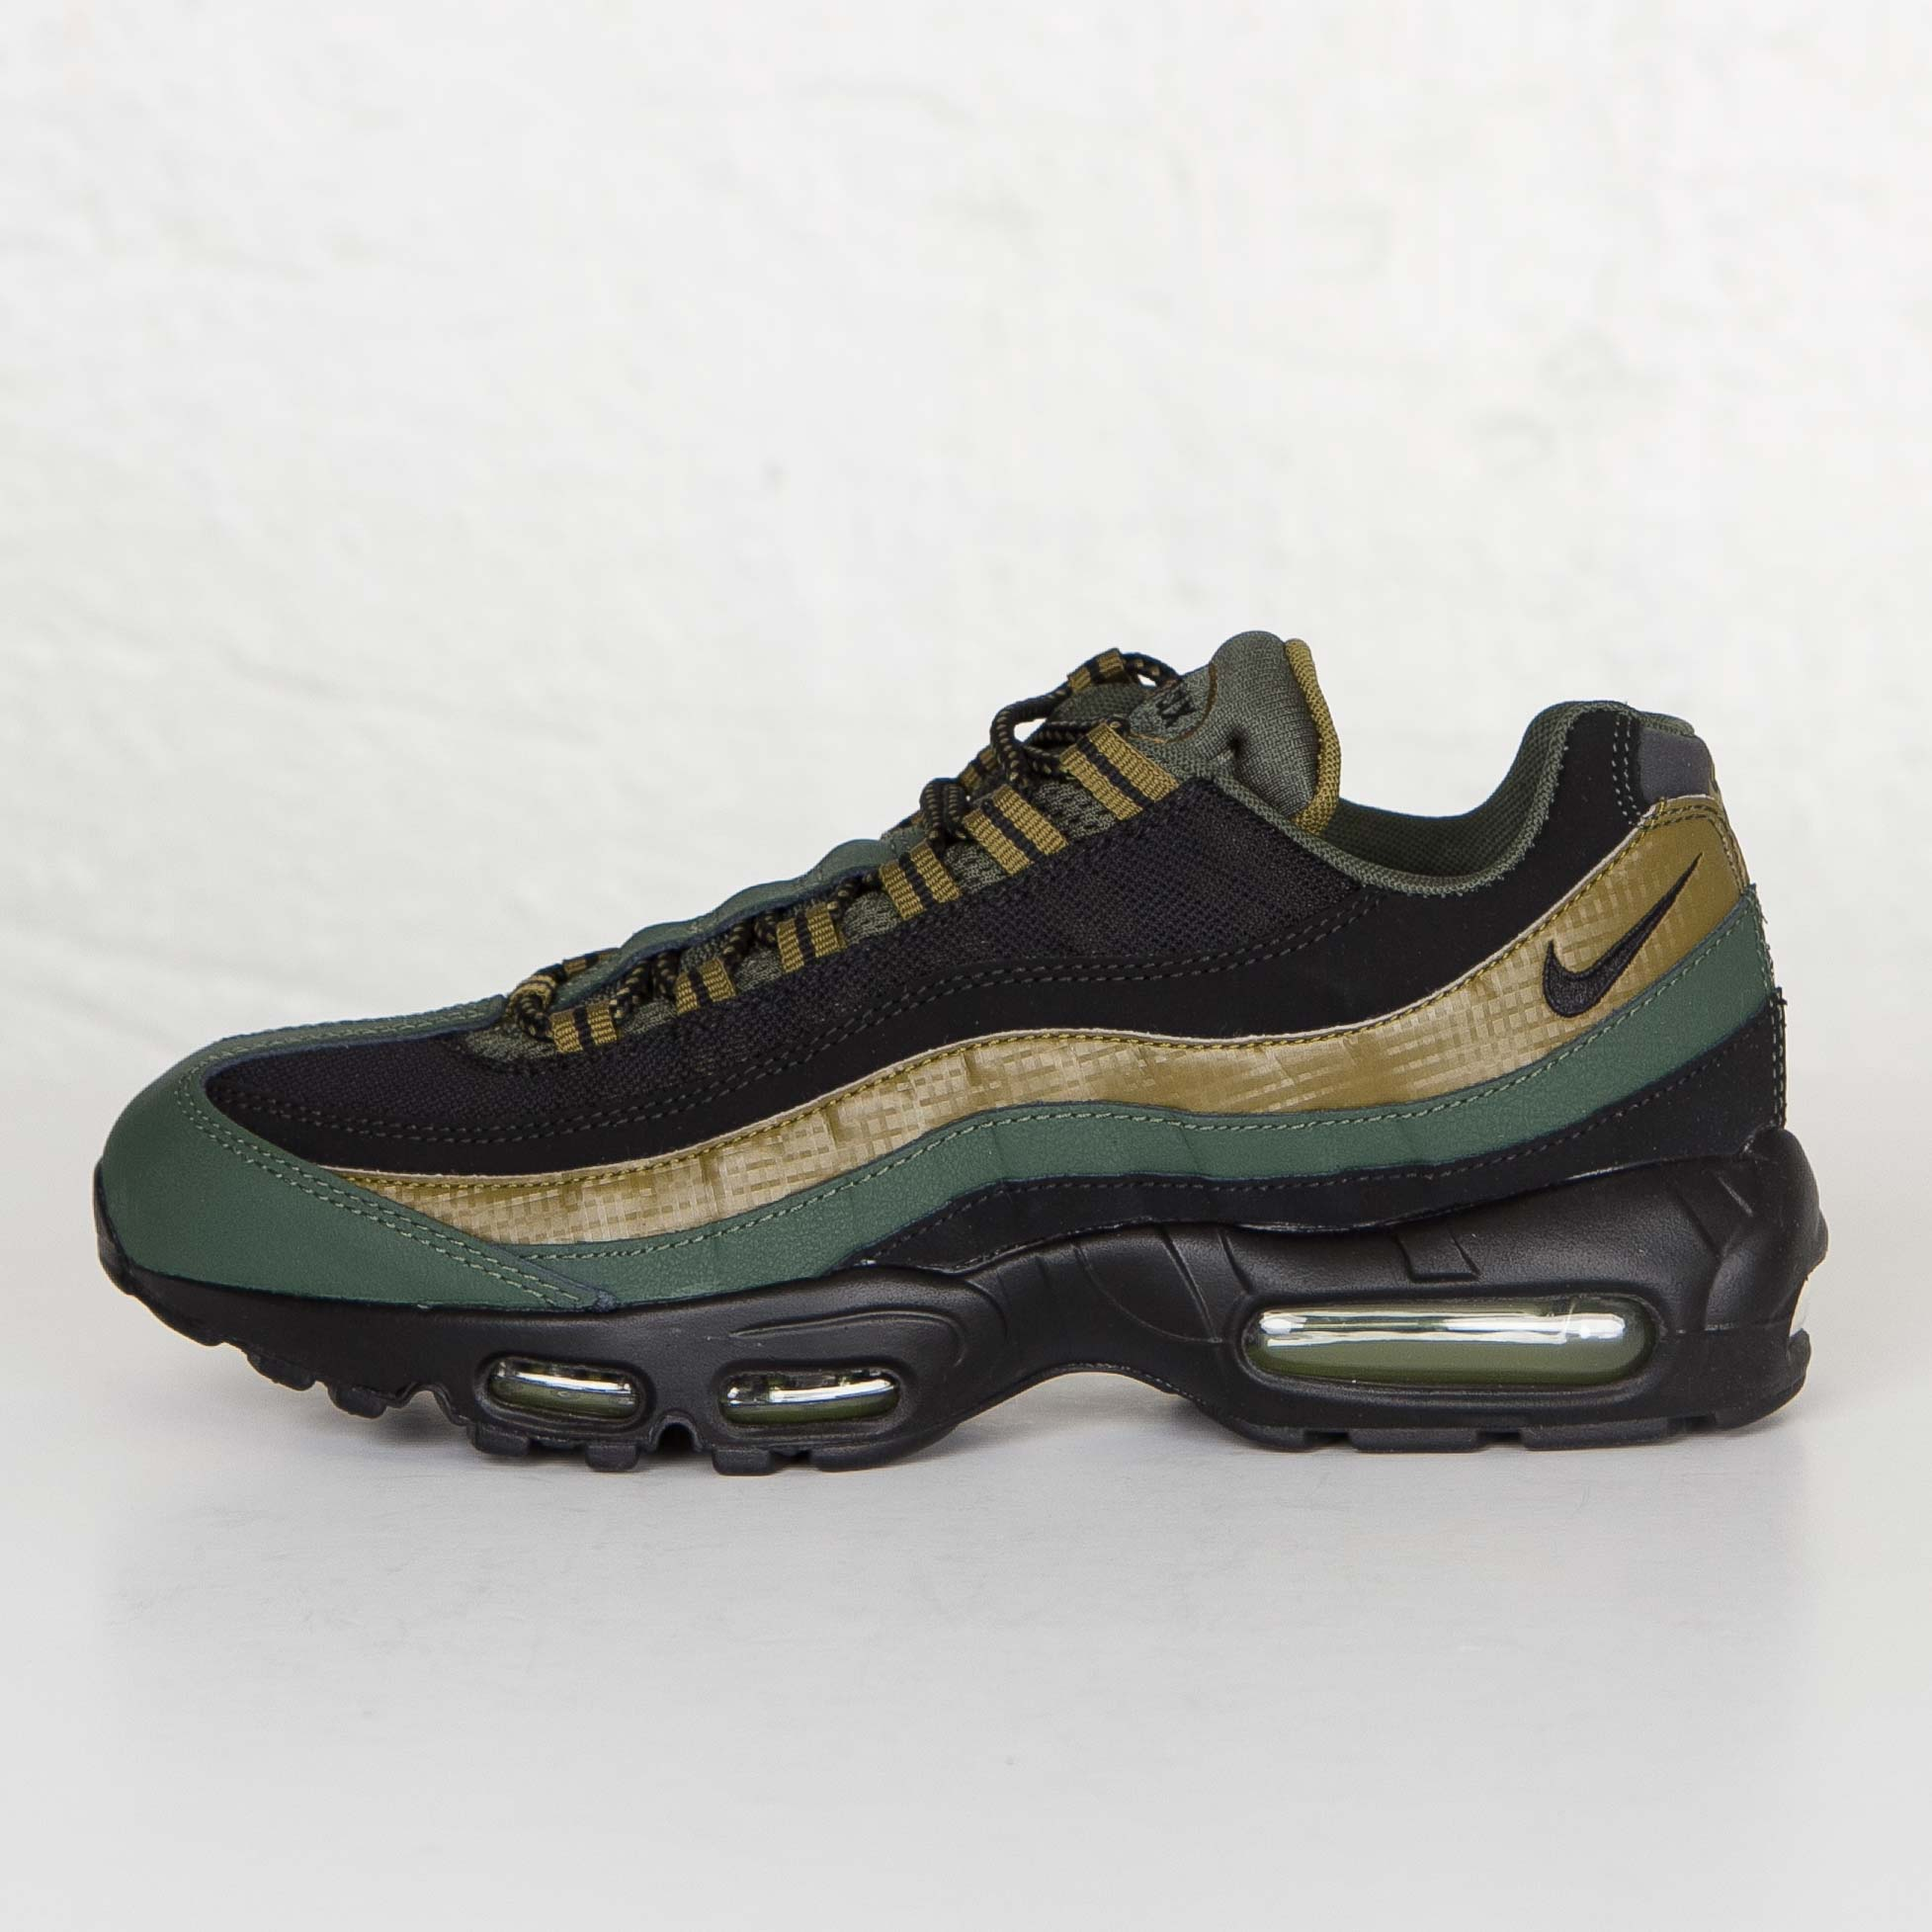 Nike Air Max 95 essential black gold green 749766 300 Mens Running Shoes 749766 300